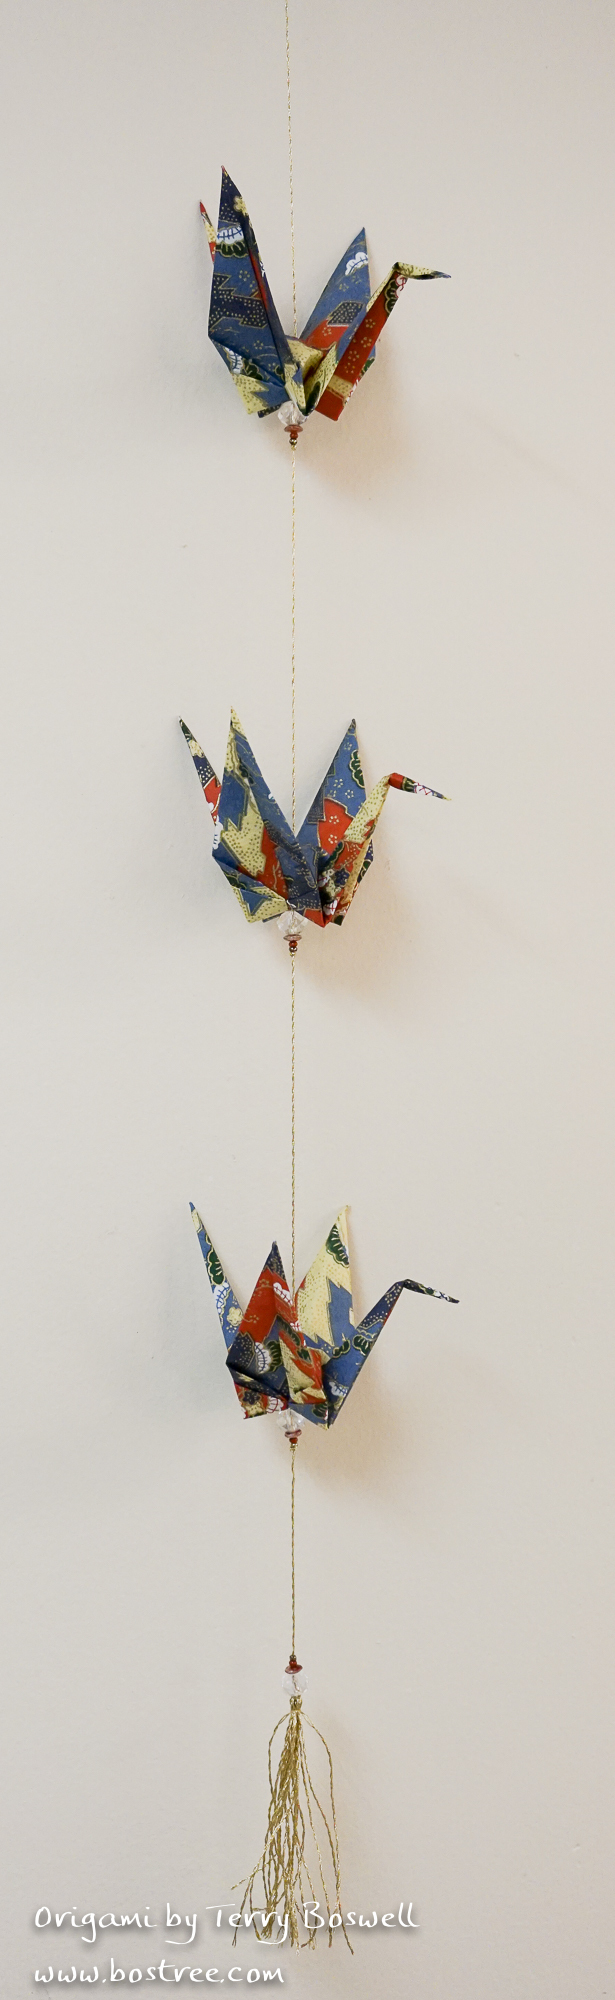 Three Crane Origami Mobile - Blue, Rust, Beige, Gold OR00029